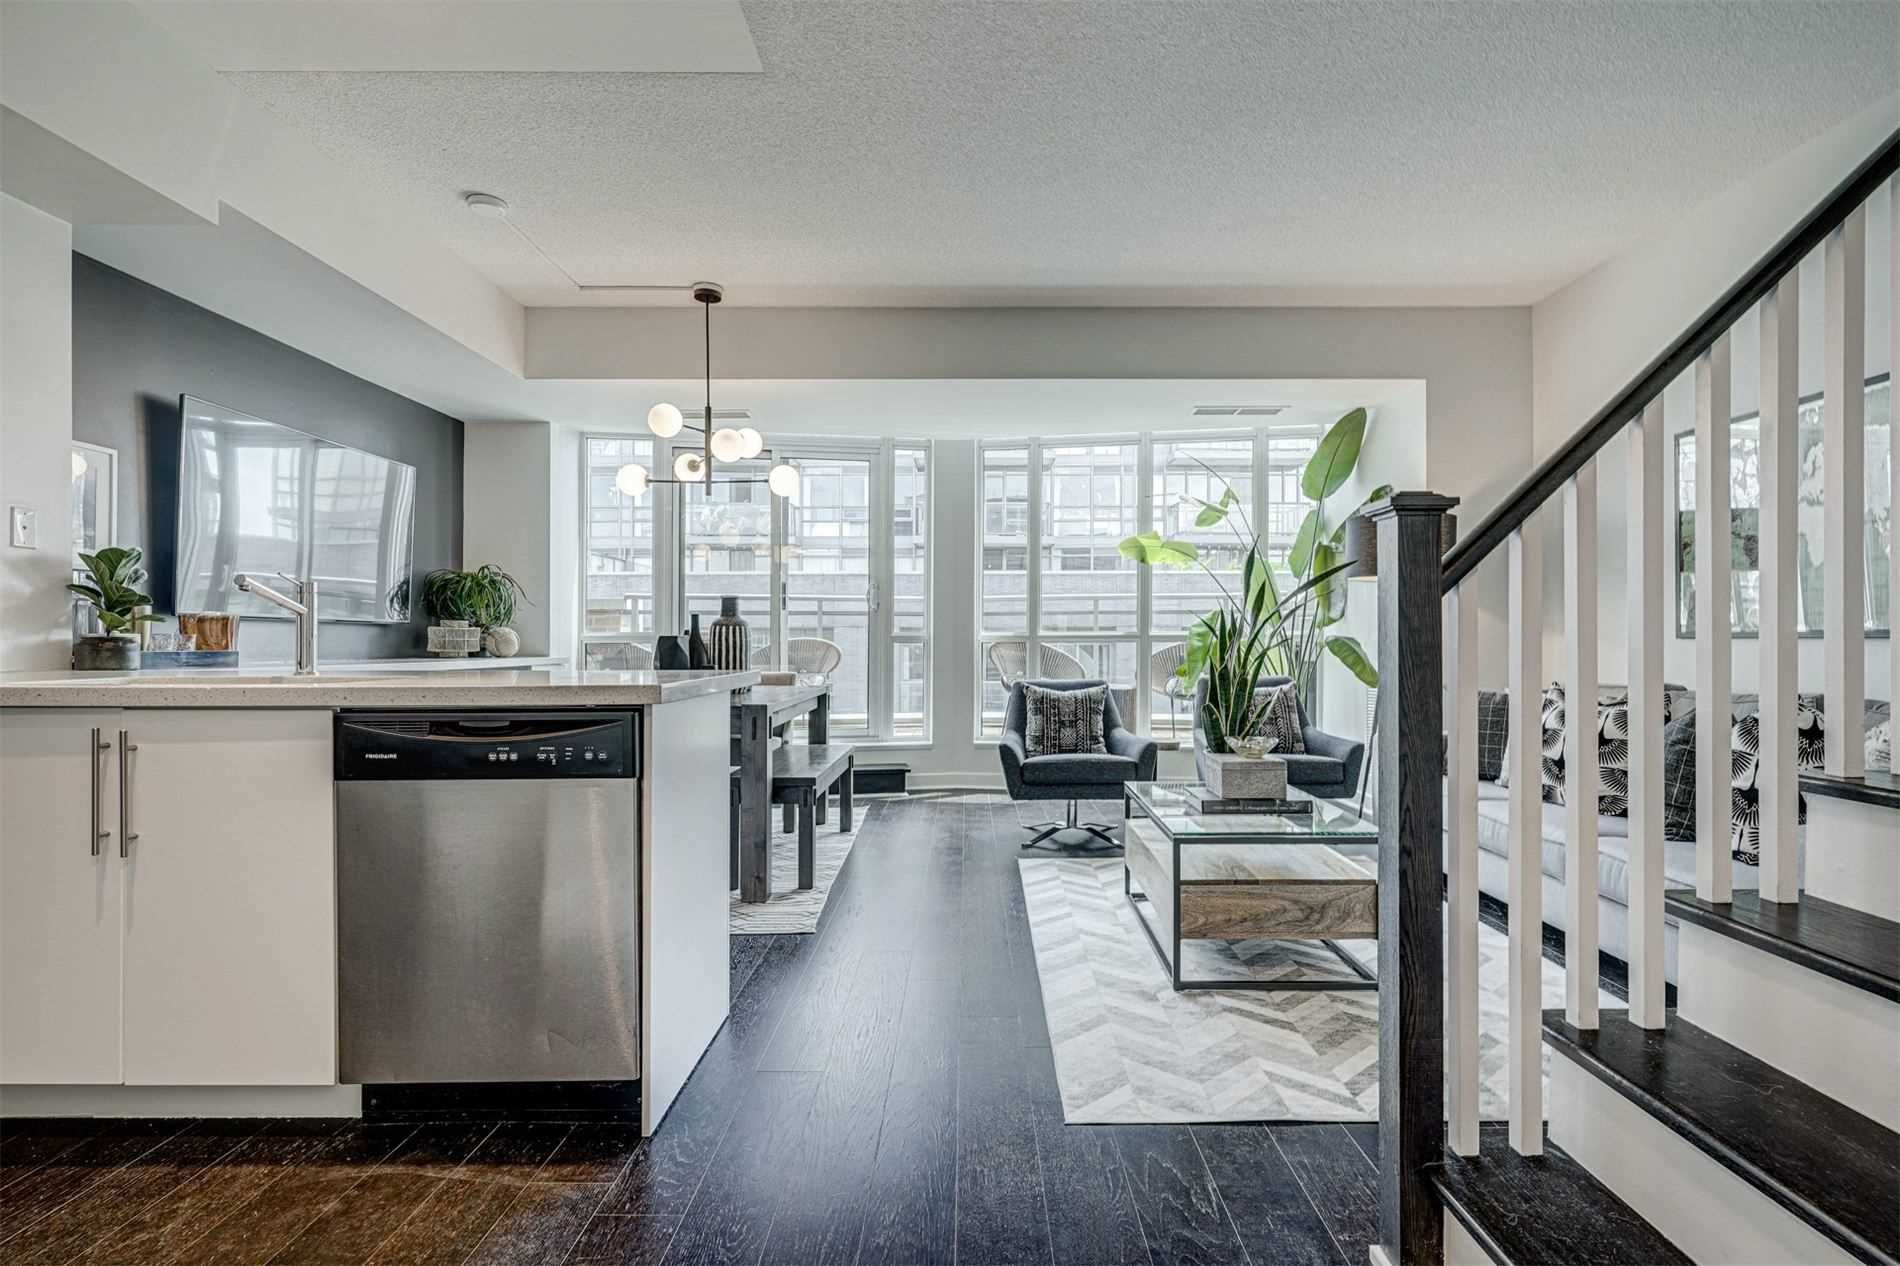 1169 Queen St W, unit Ph 720 for sale in Little Portugal - image #2